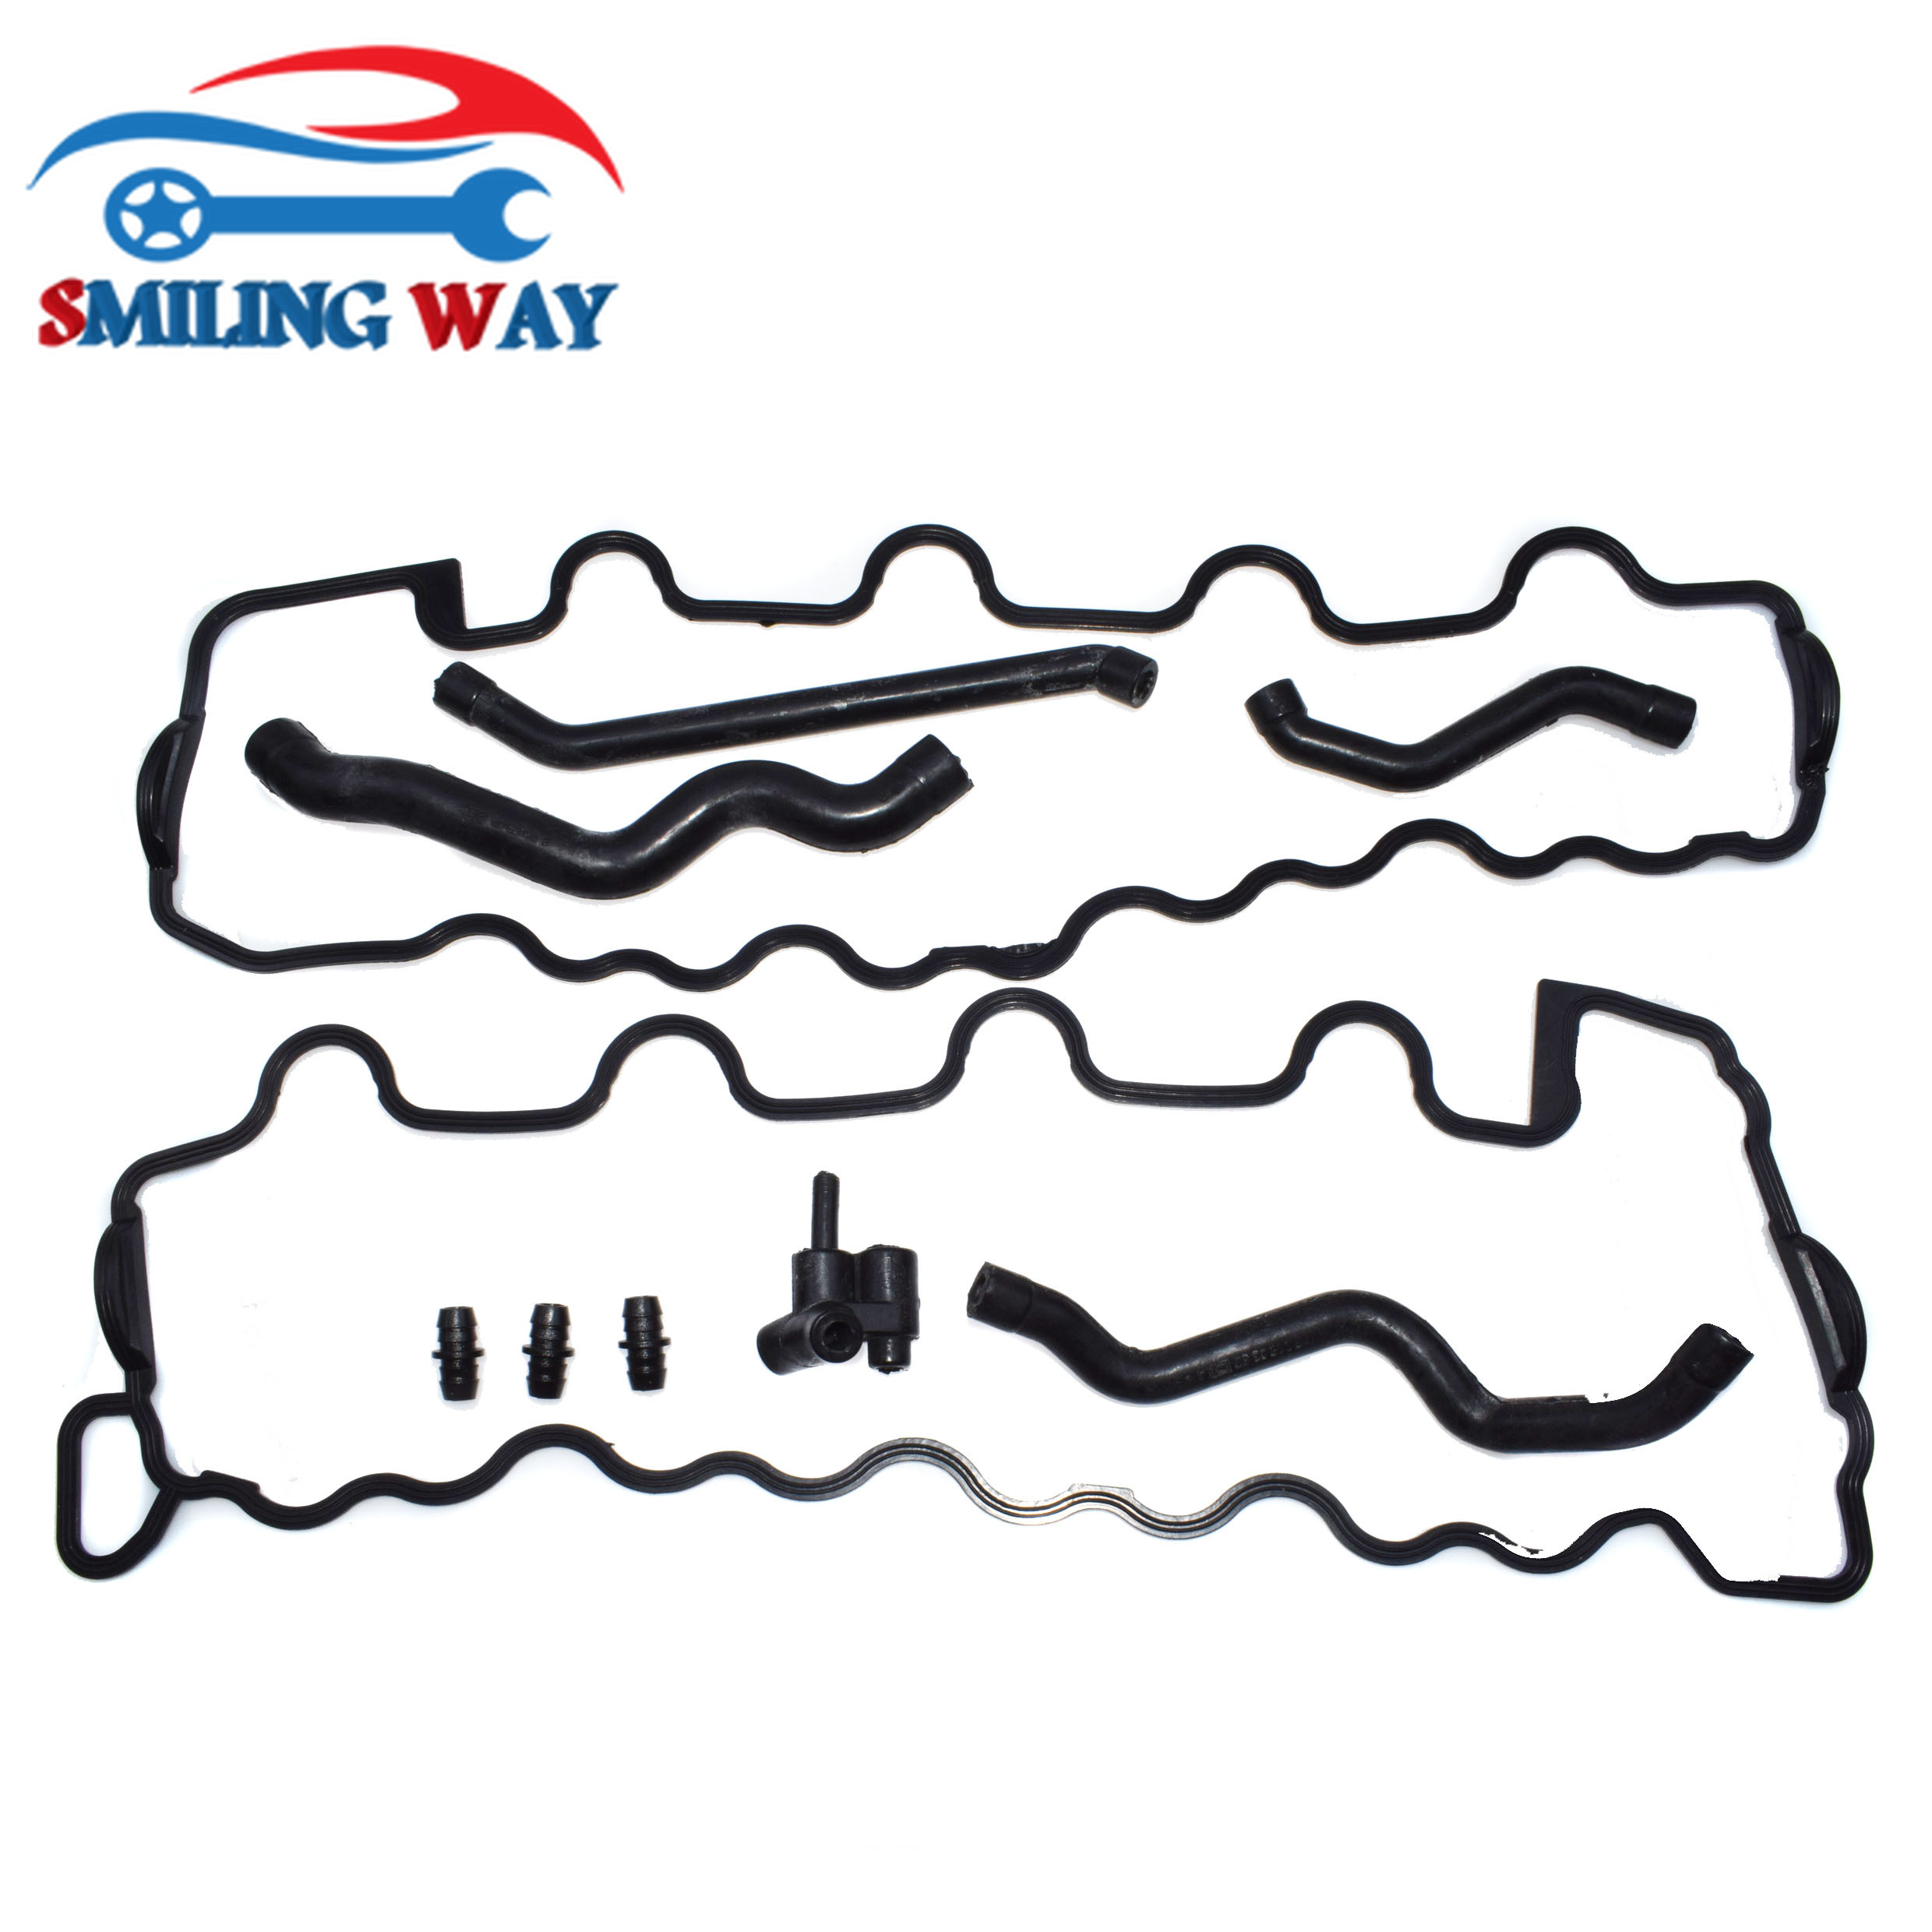 SMILING WAY Crankcase Breather Hose Pipe Tube Connector Valve Cover Gasket For Mercedes Benz W203 W210